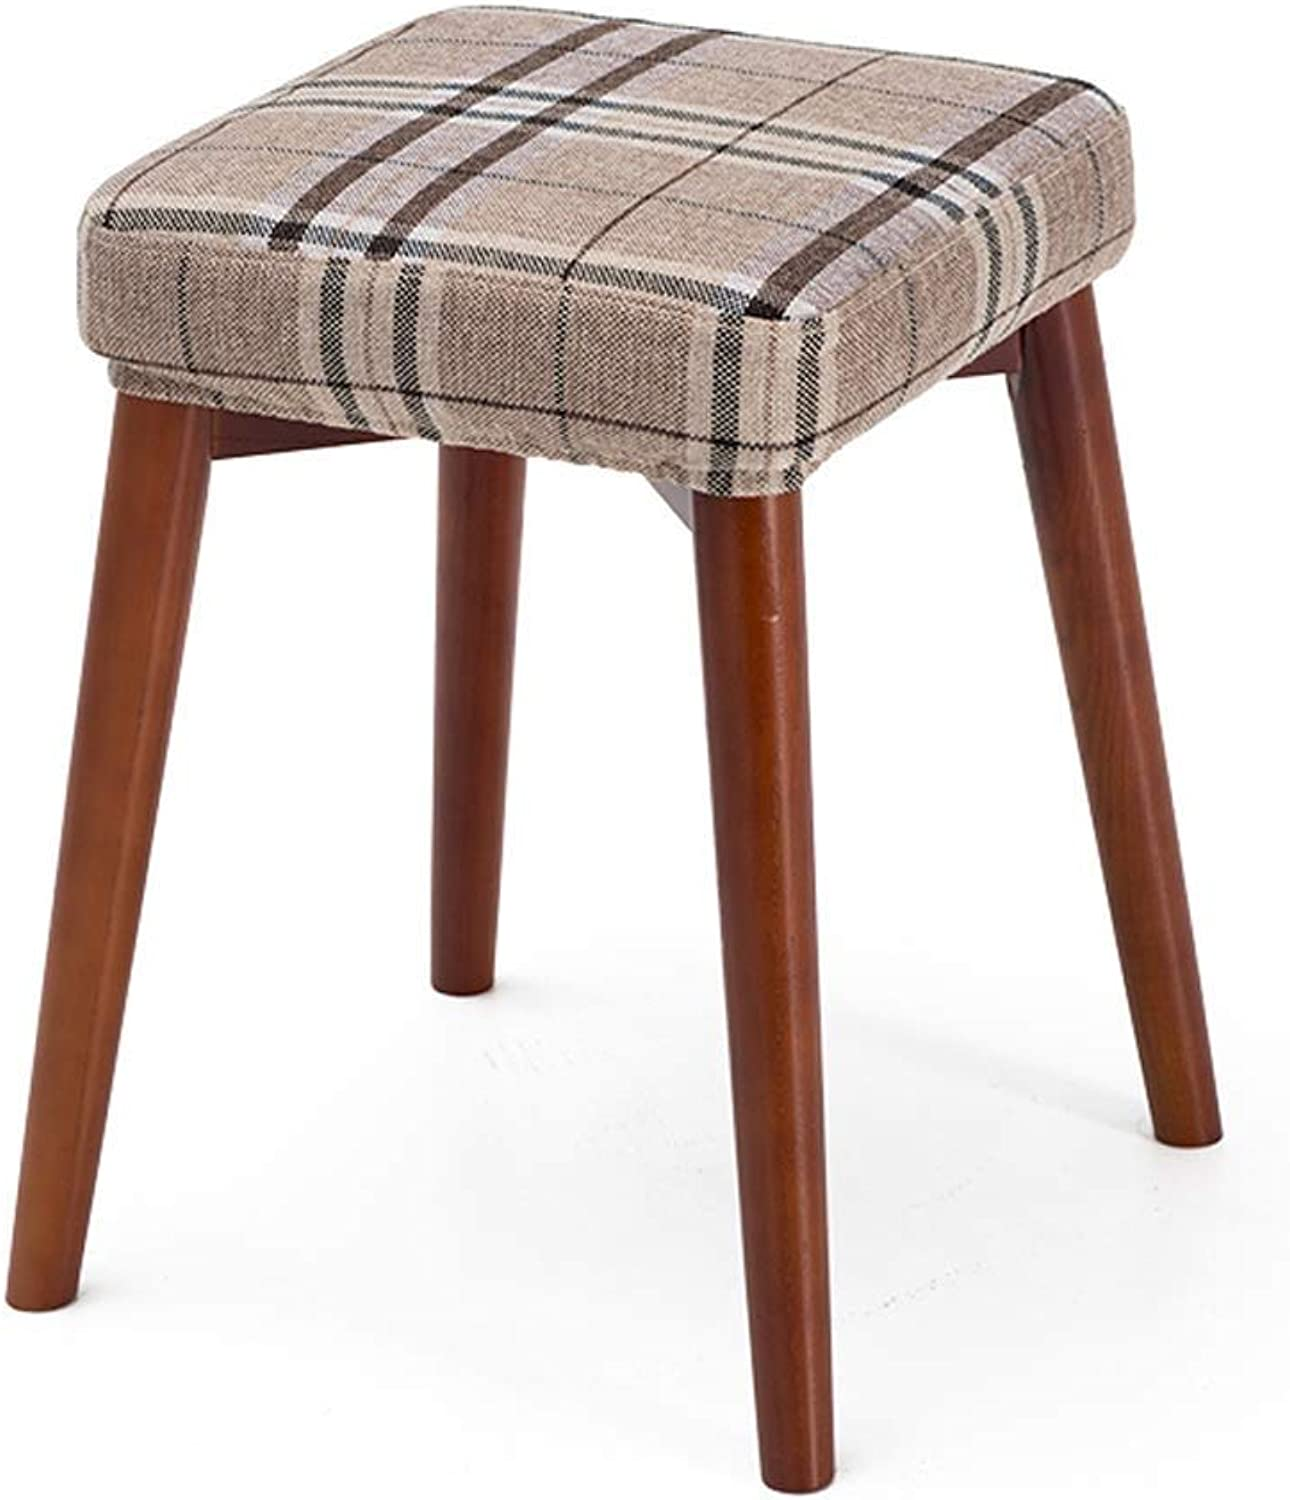 Solid Wooden Dining Stool Square Stool Can Be Stacked Stool Creative Fashion Dressing Stool Cloth Dining Table Stool Household Small Bench, GMING (color   Brown Leg)